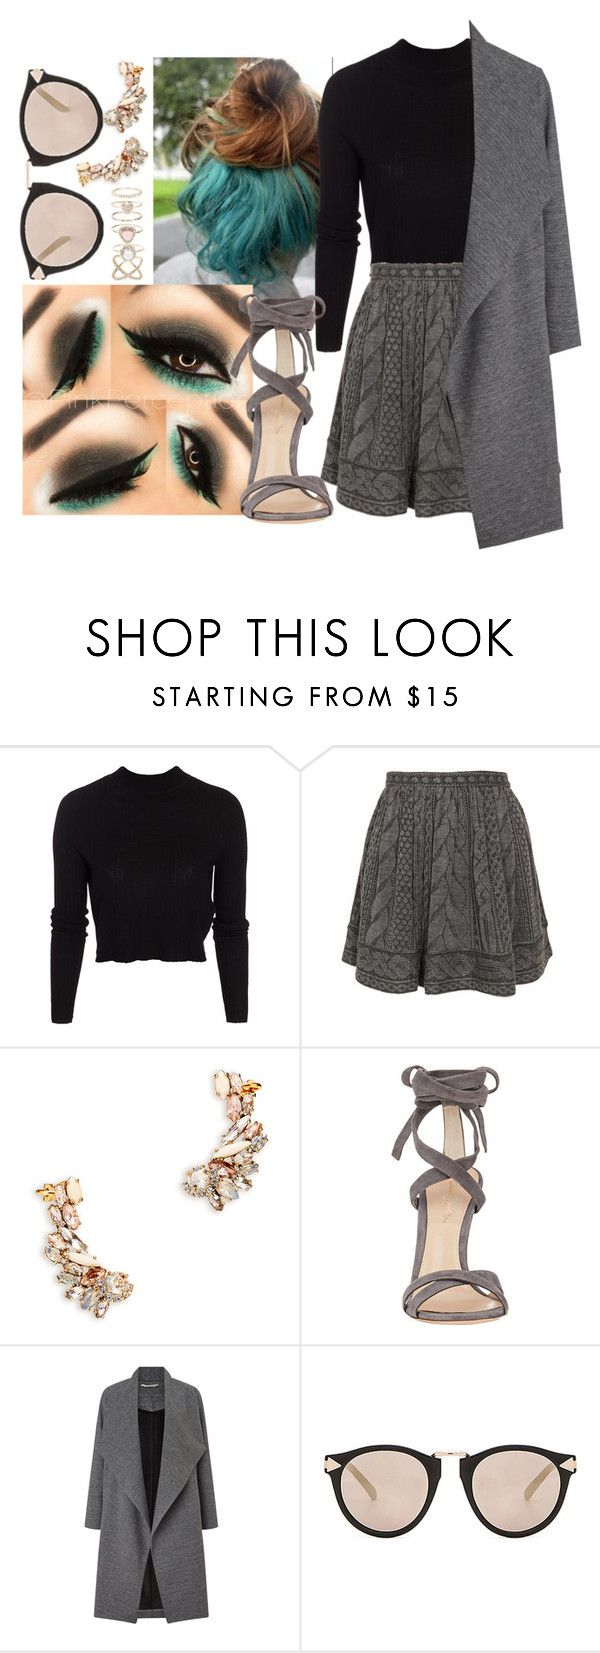 """""""Go to the cinema with friends"""" by lol-girl-fun ❤ liked on Polyvore featuring ONLY, Opening Ceremony, Gianvito Rossi, Miss Selfridge, Karen Walker, Accessorize, to, friends, with and go"""